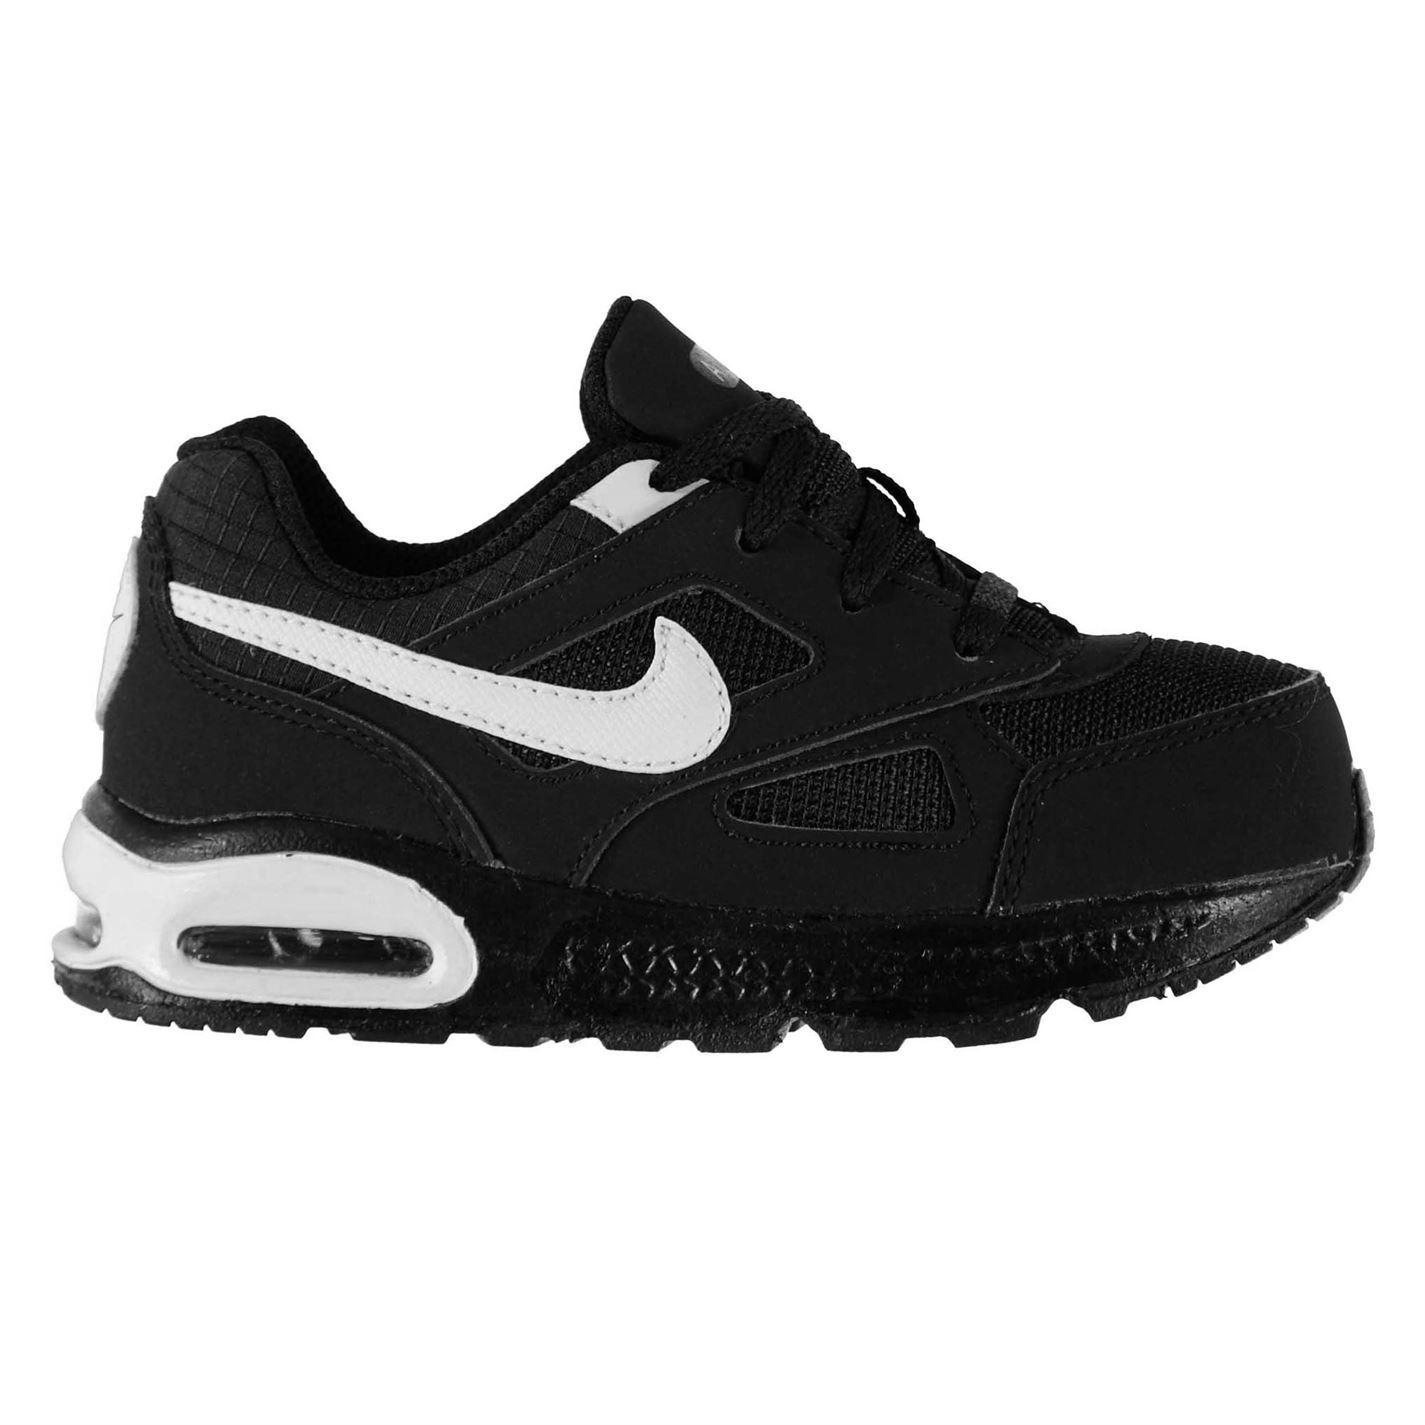 nike air max ivo trainers infants black white baby. Black Bedroom Furniture Sets. Home Design Ideas